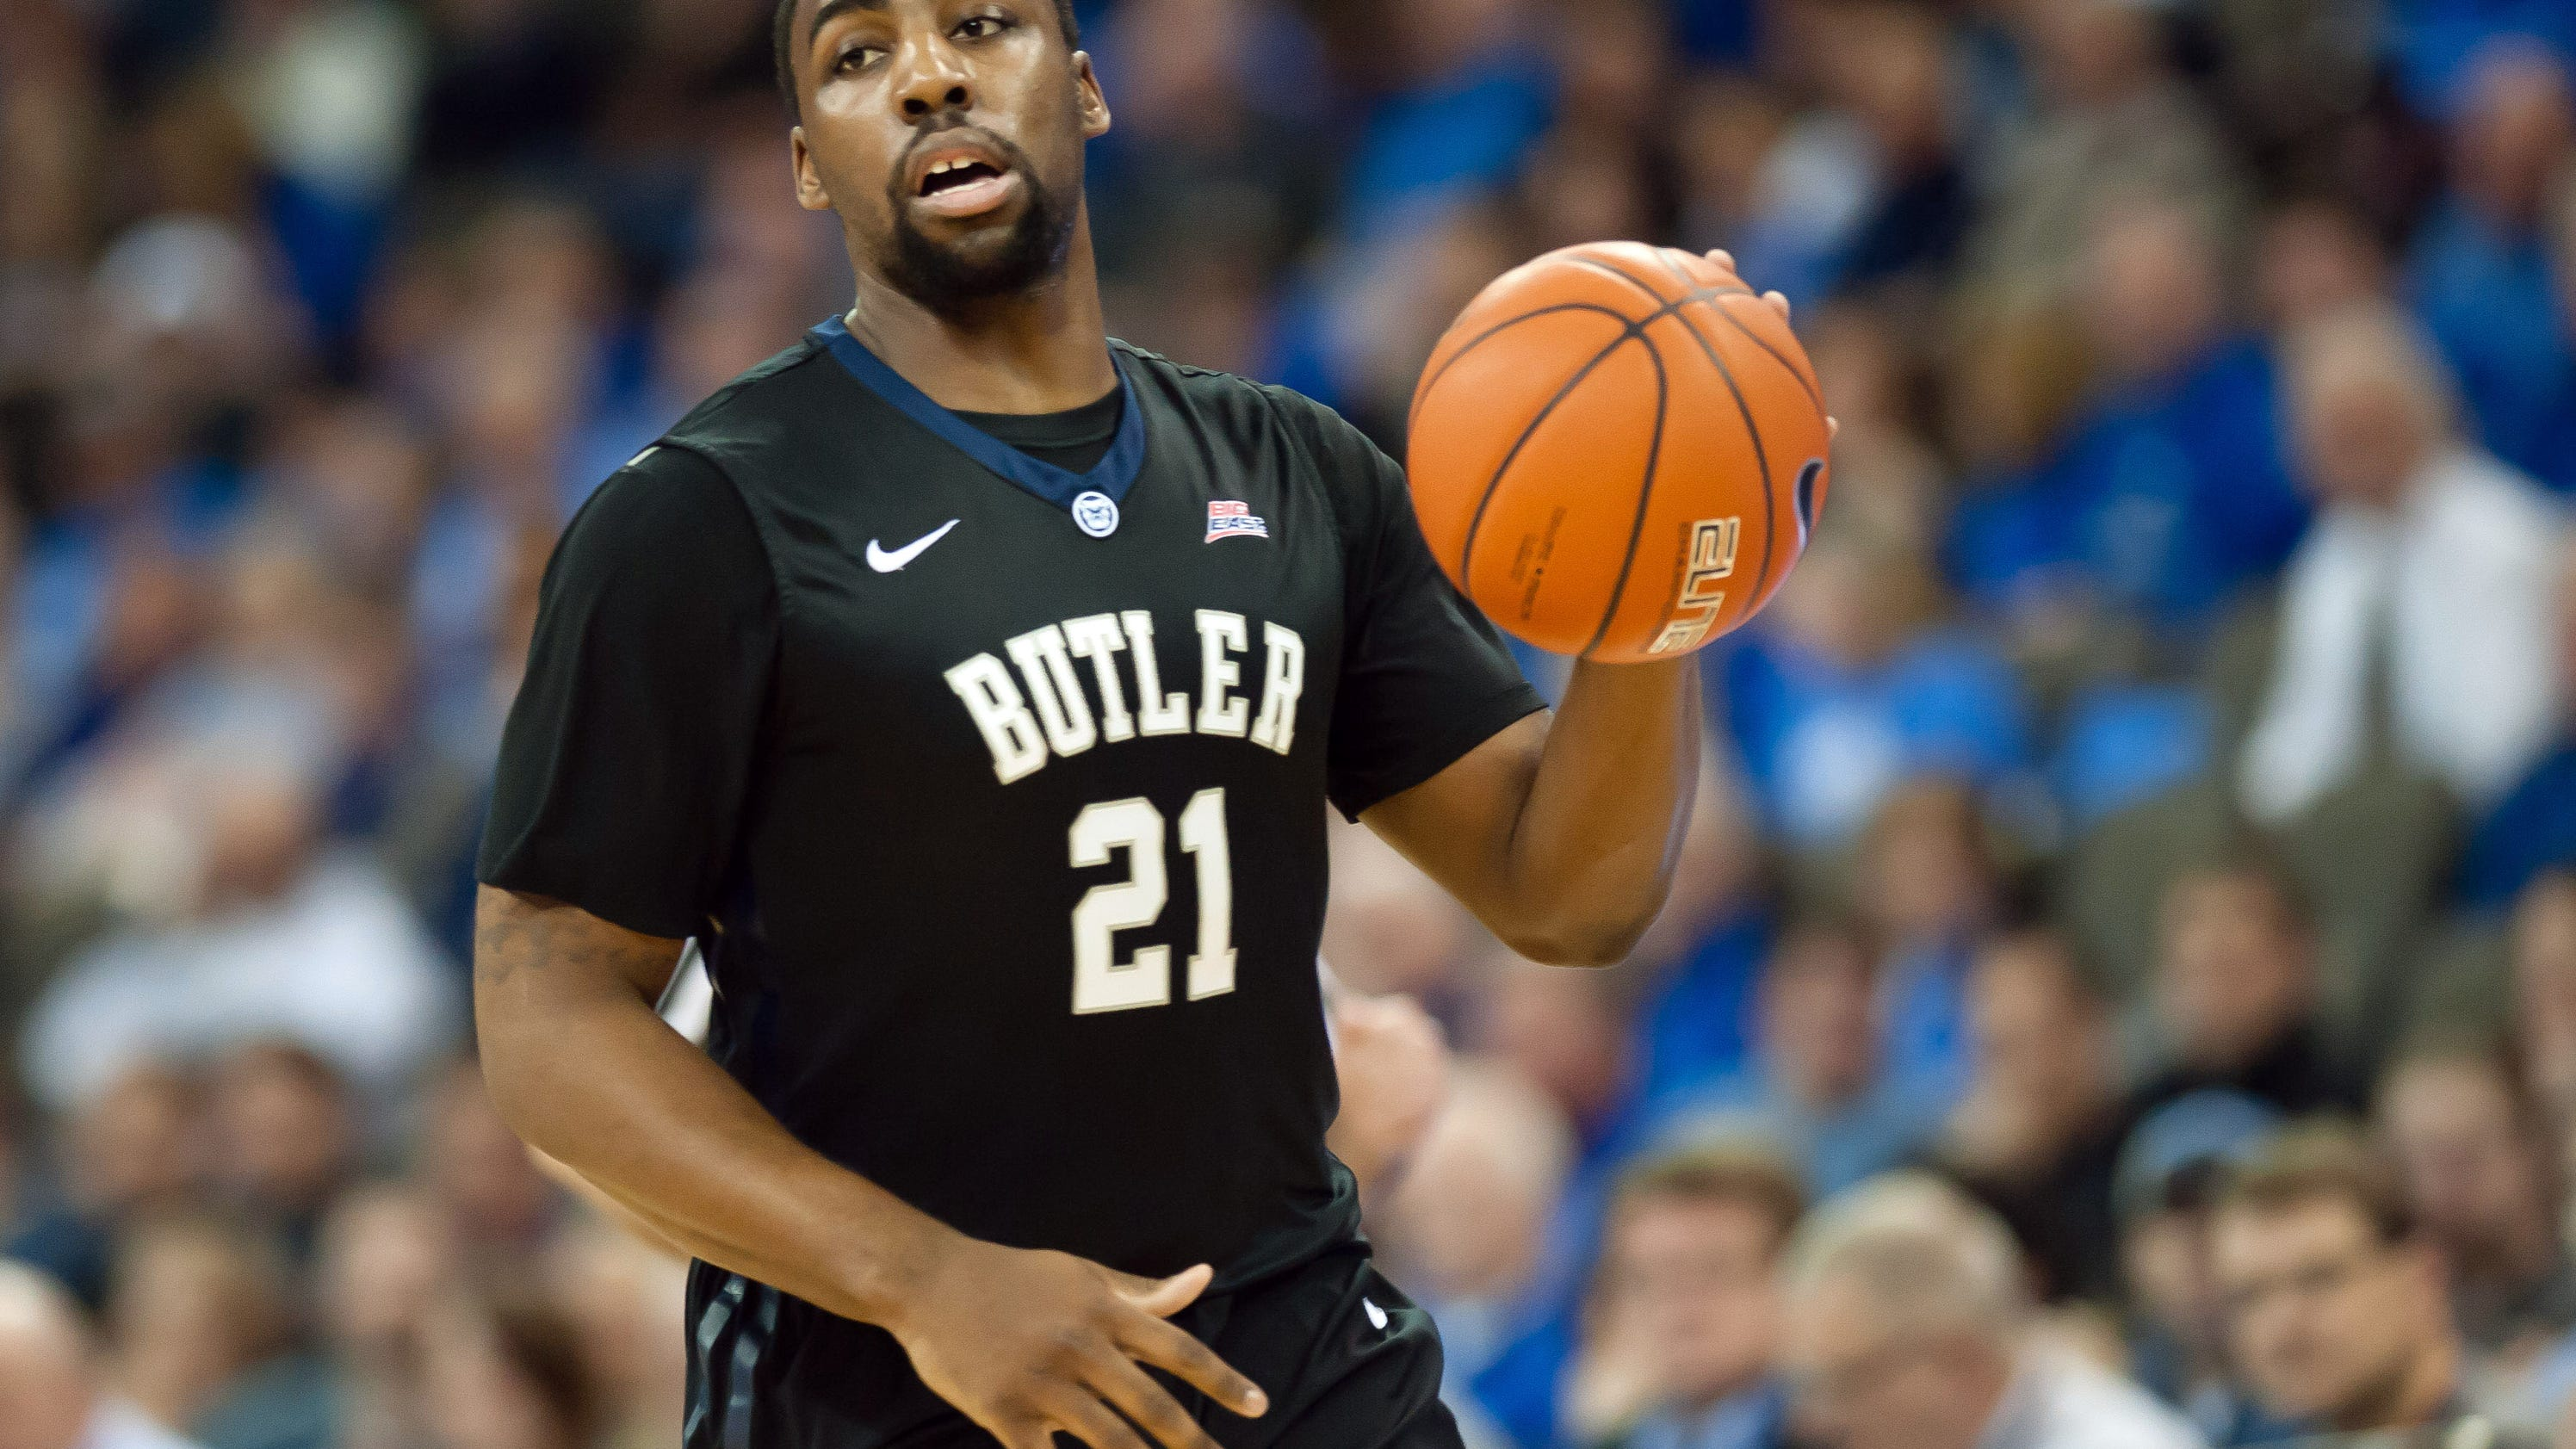 College basketball: RPI puts Butler at No. 22, Valpo ahead ...